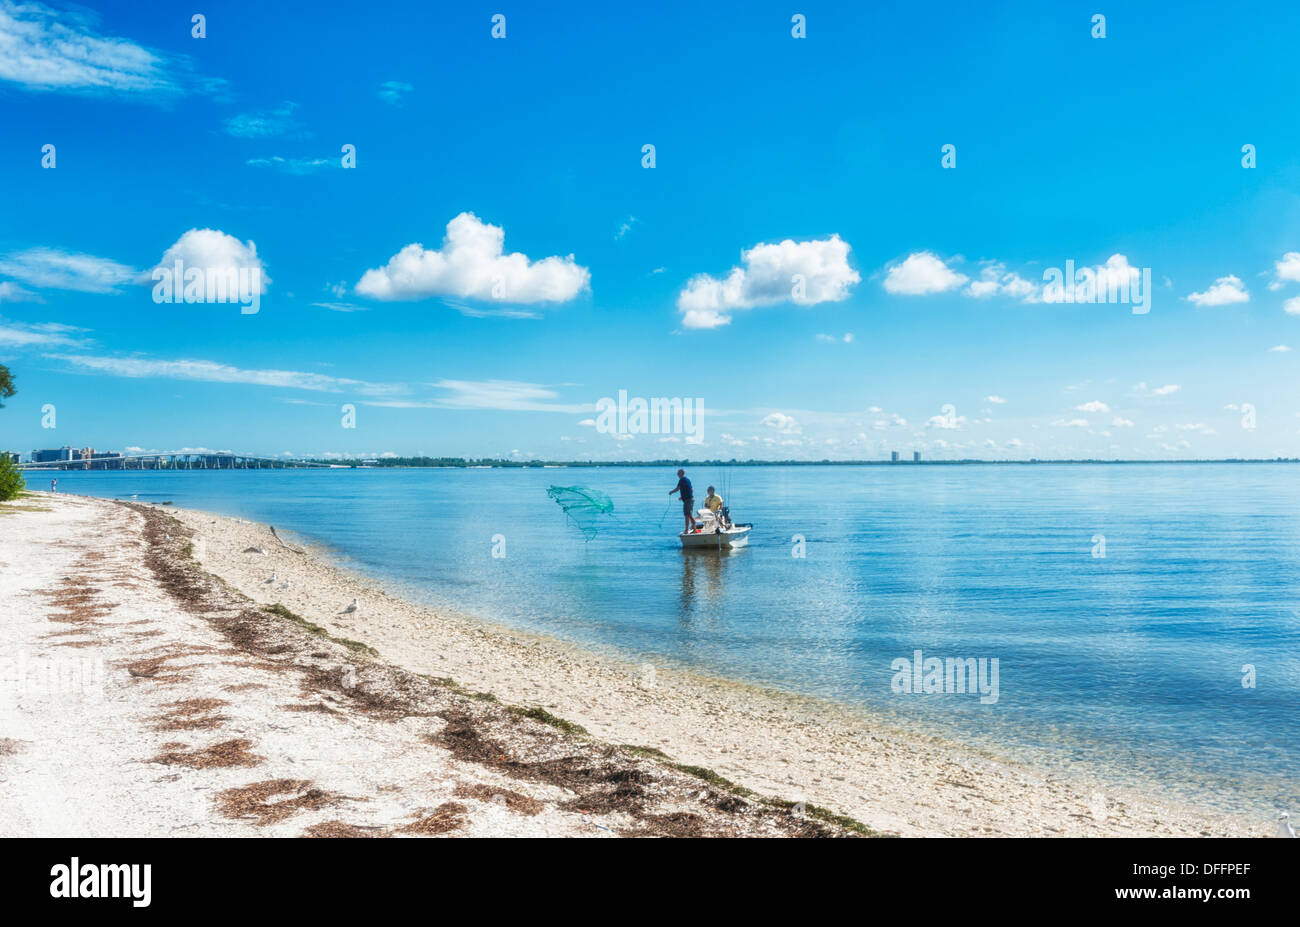 Two men fishing at distance cast net into blue water of the Gulfcoast of Florida blue skies few clouds. White sandy Stock Photo